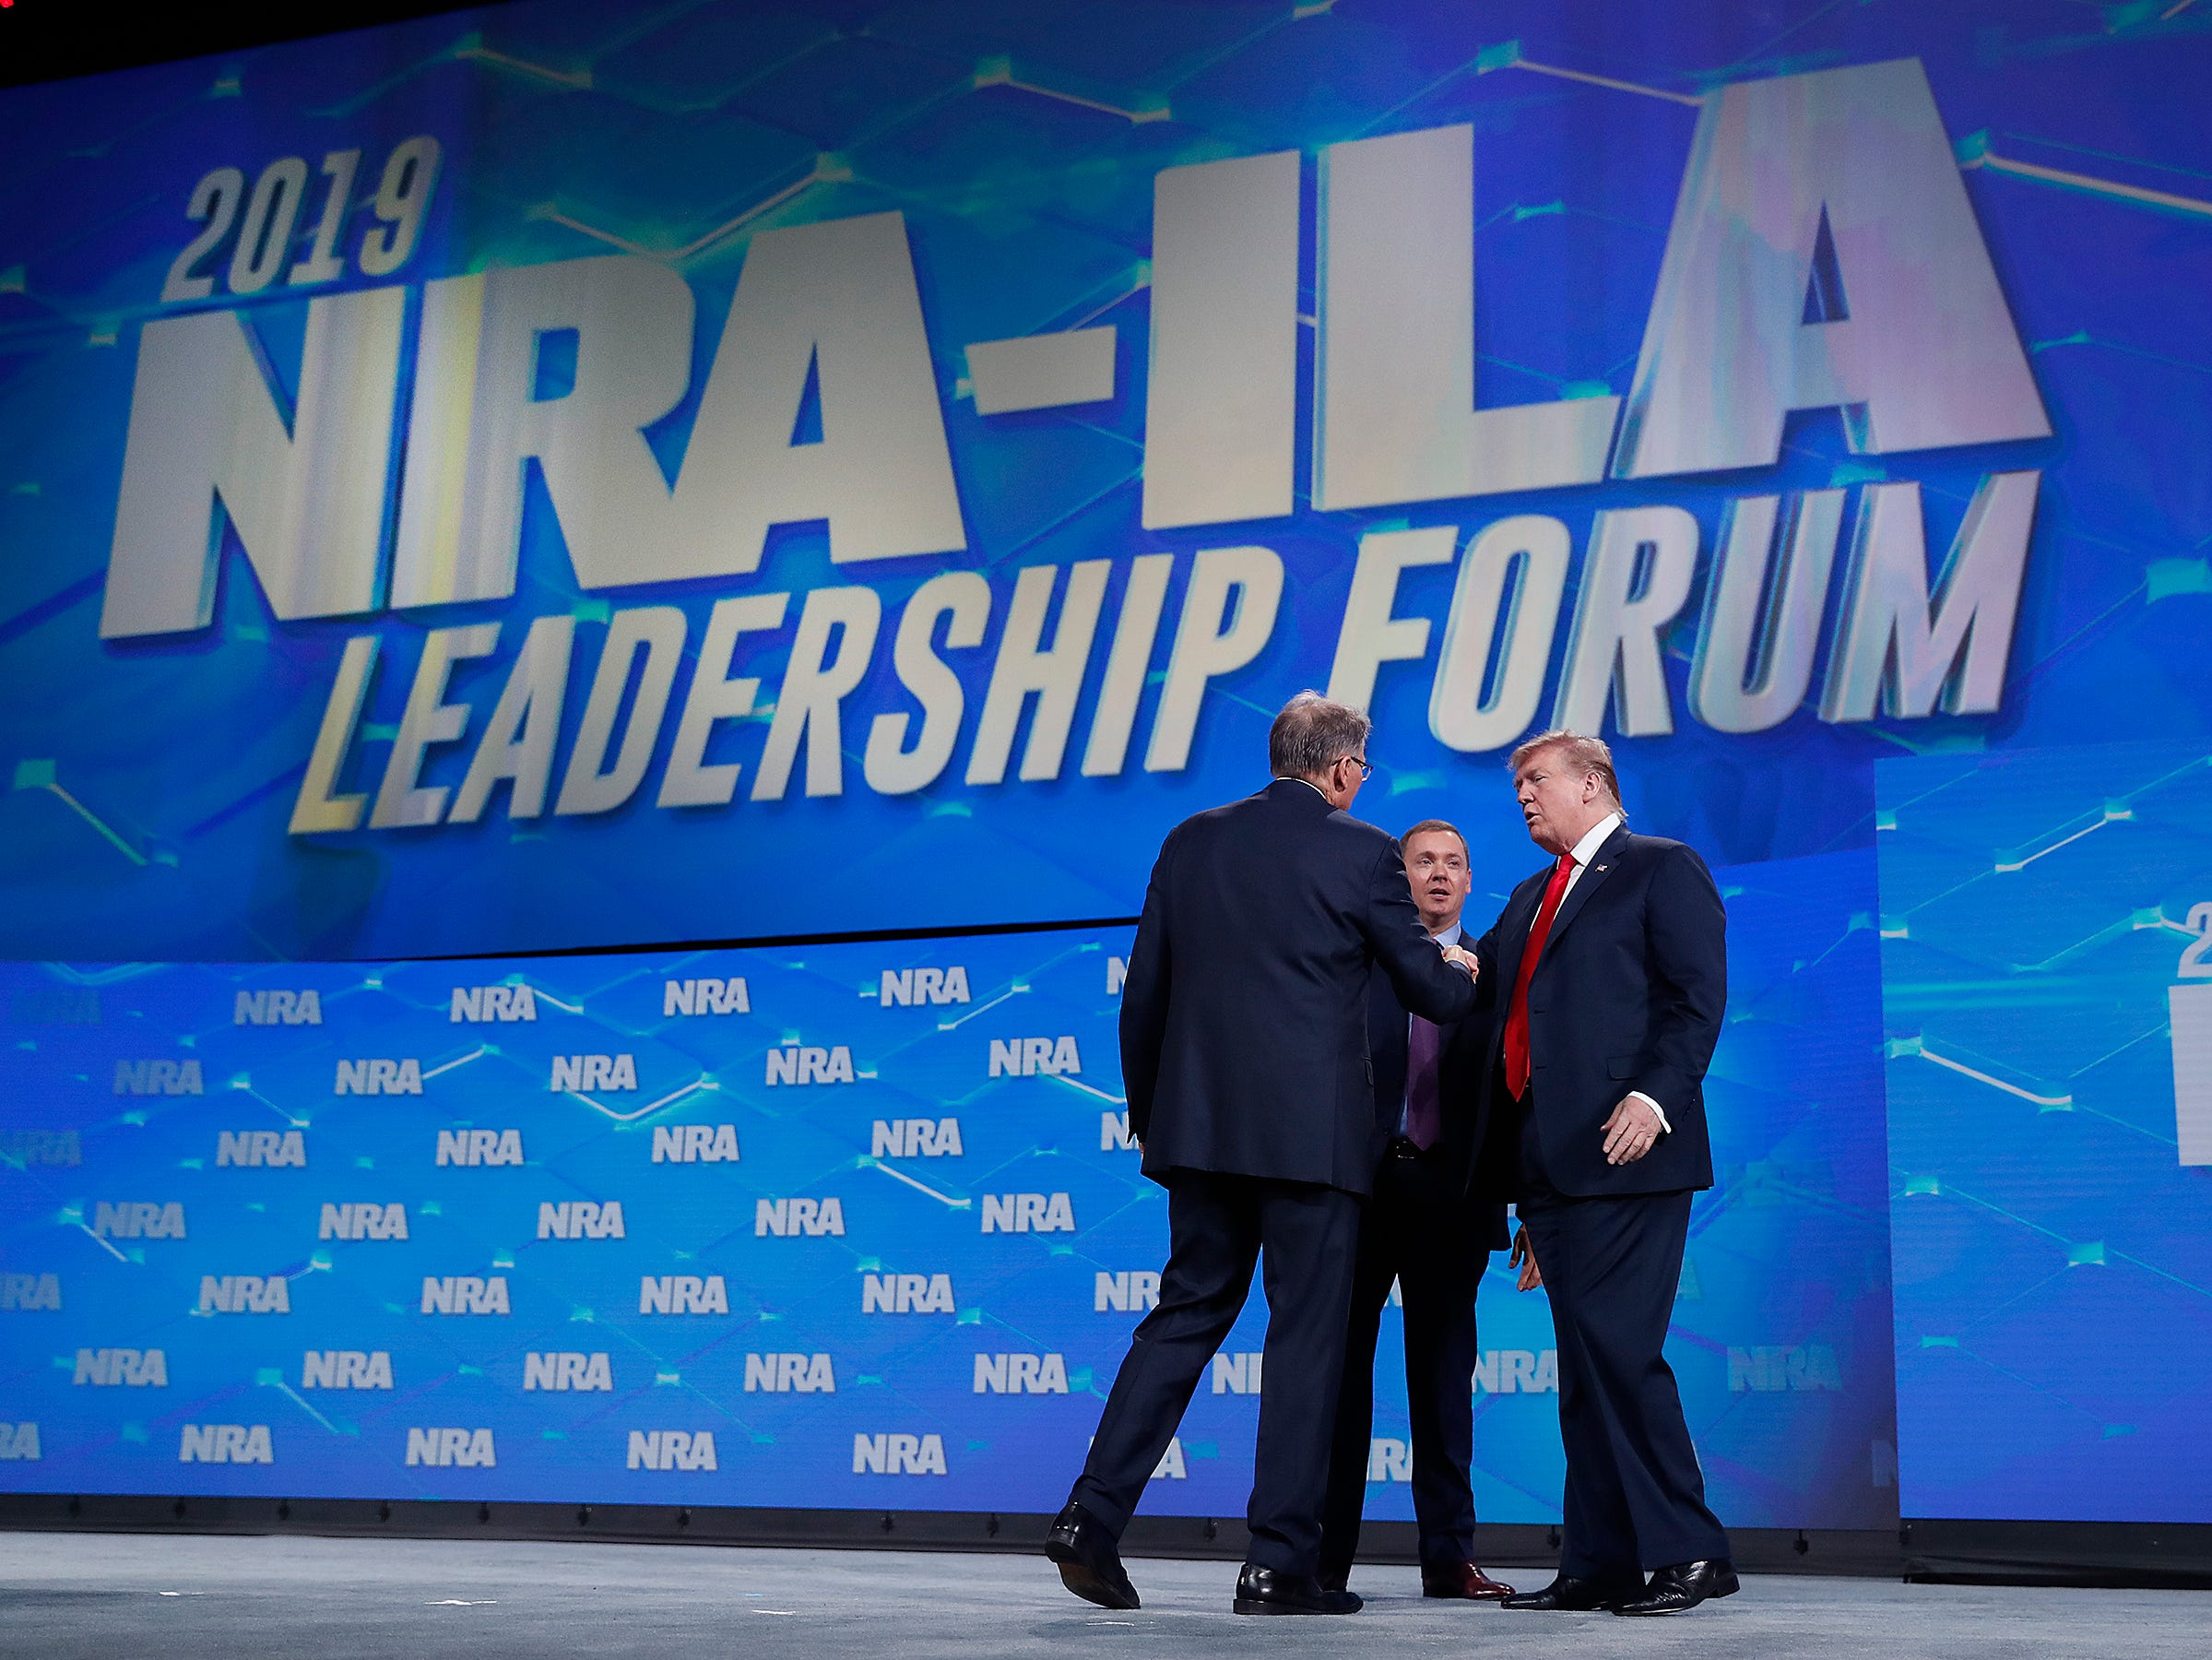 President Donald Trump shakes hands with Chris Cox, Executive Director of the National Rifle Association's Institute for Legislative Action as Wayne LaPierre, Executive Vice President and Chief Executive Officer of the NRA looks on. President Trump addressed the National Rifle Association Institute for Legislative Action Leadership Forum, Friday, April 26, 2019, at Lucas Oil Stadium in Indianapolis. The forum is part of the 148th NRA annual meetings and exhibits in Indianapolis.